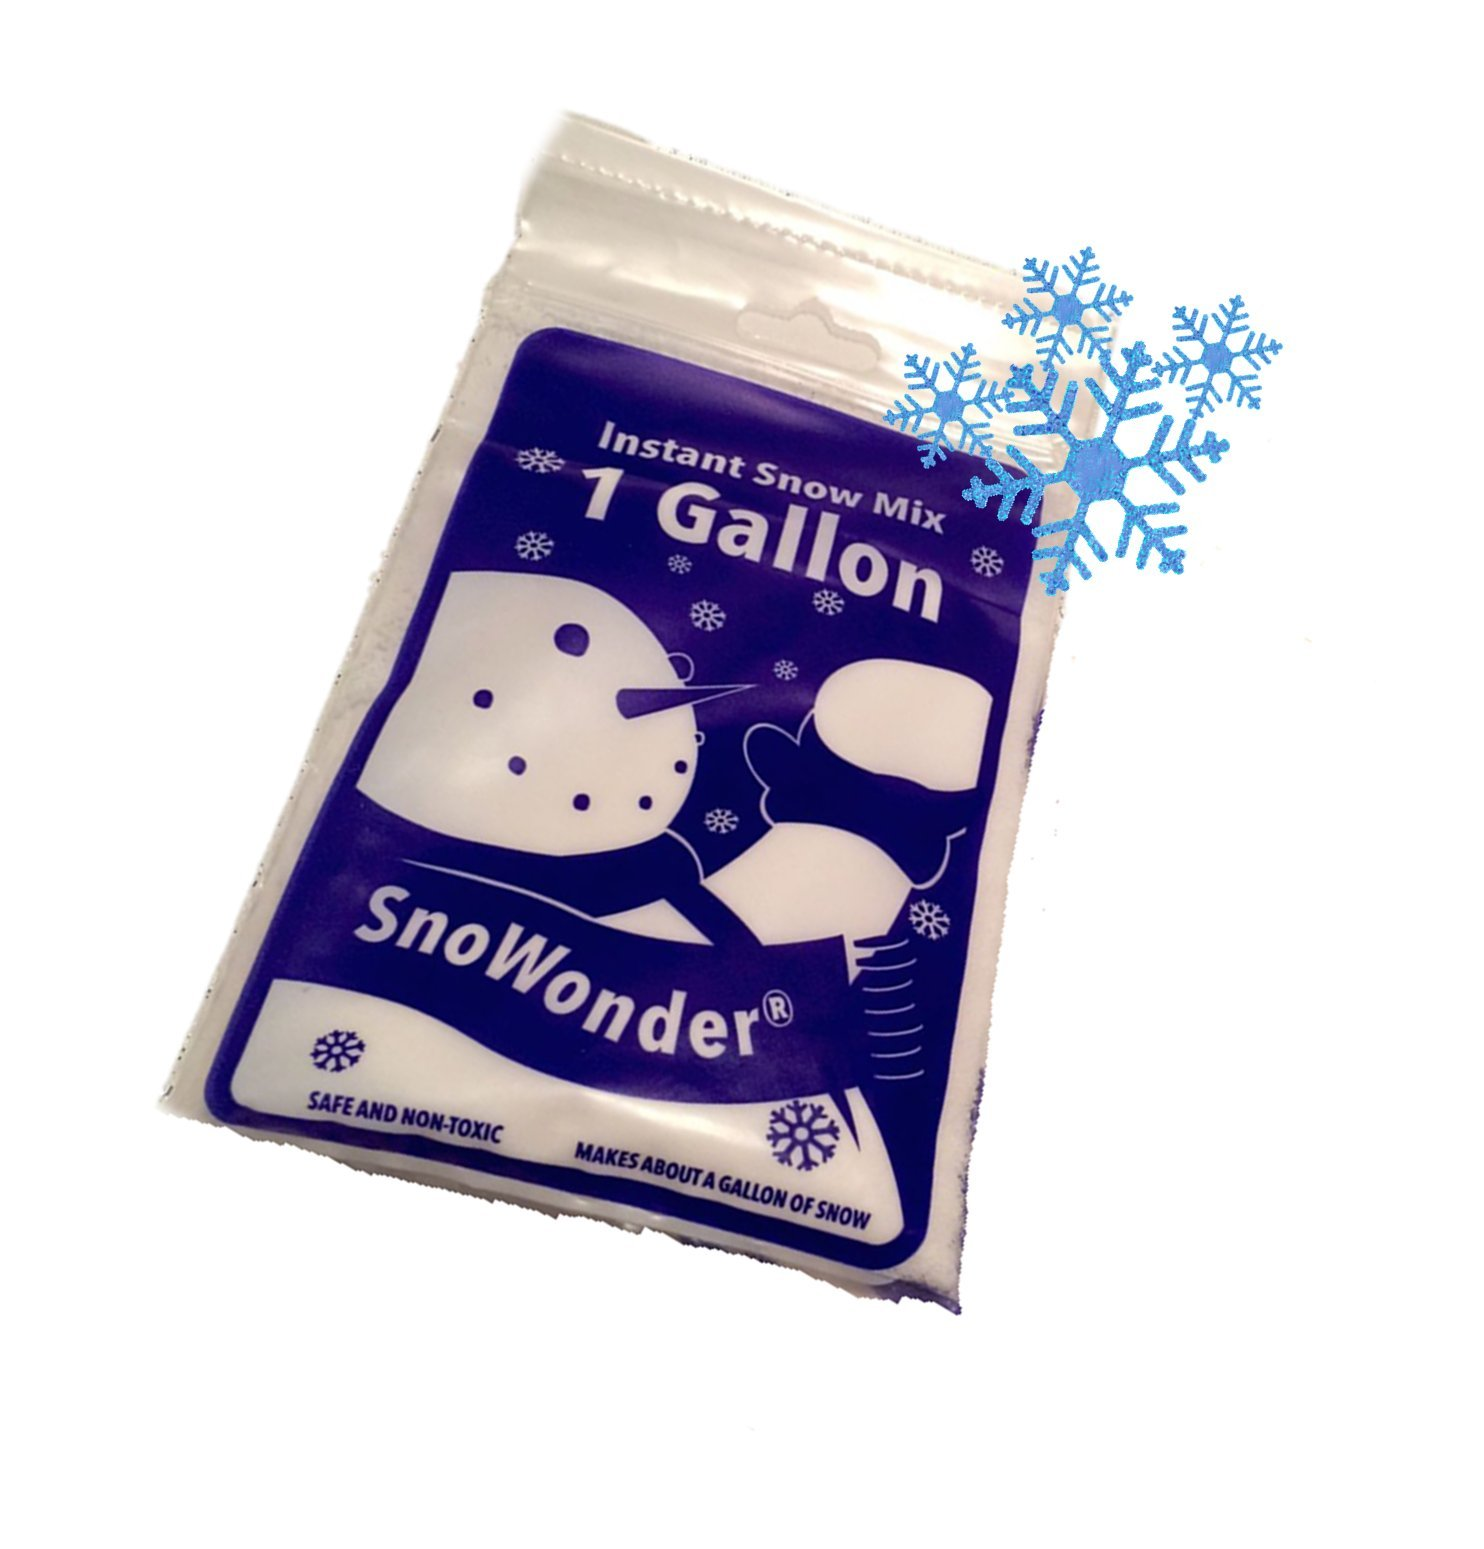 SnoWonder Instant Artificial Snow One Gallon Mix - Bonus Projects eBook - Home Decor - Seasonal Accents - Classroom Science Projects (1)